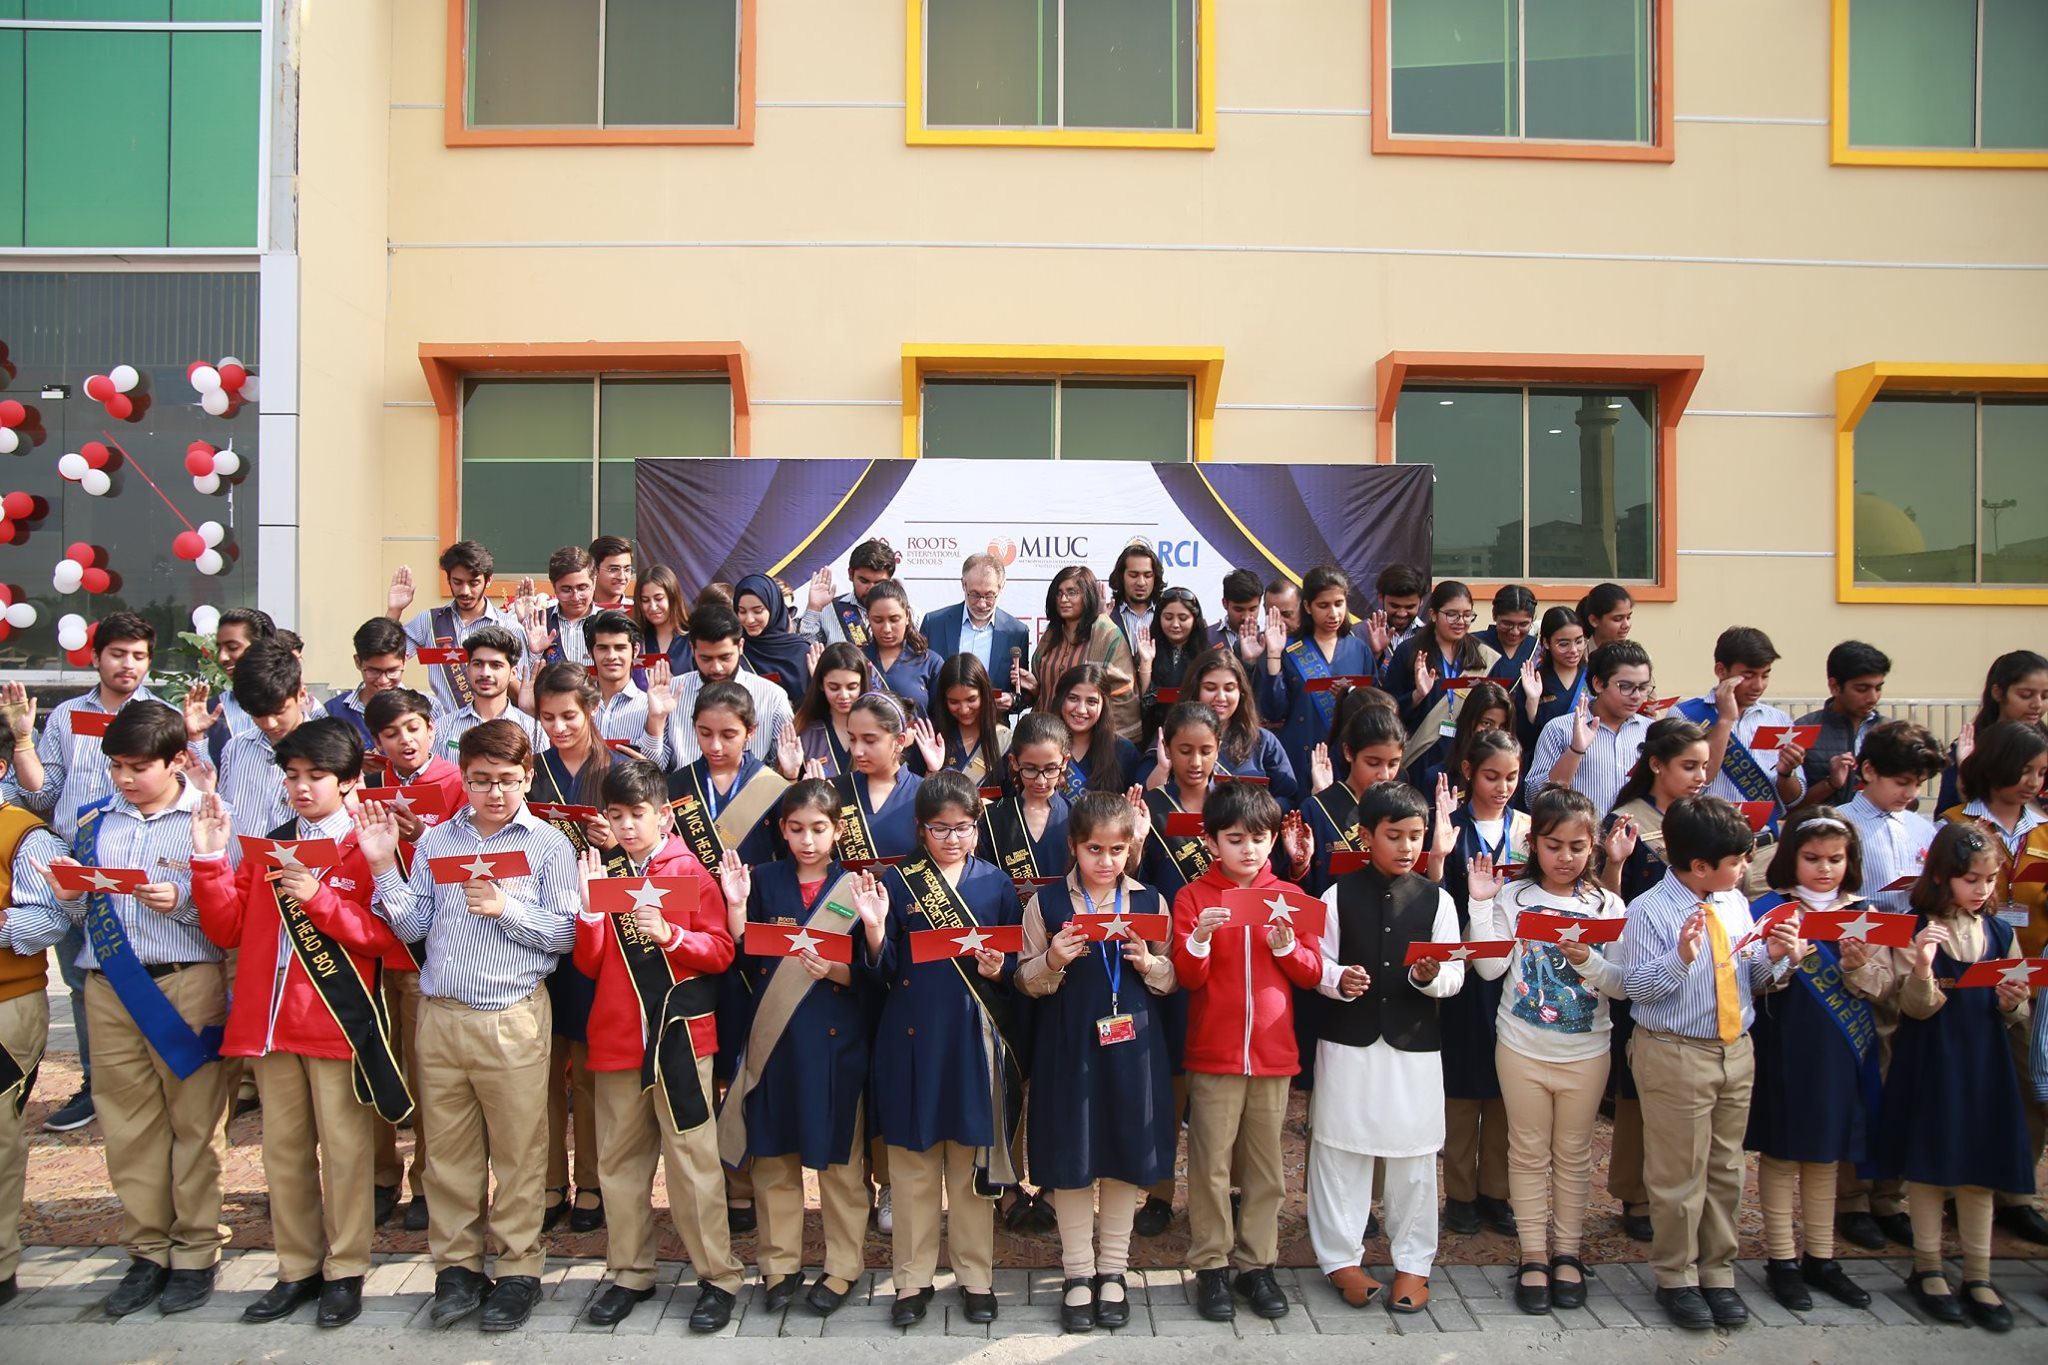 Student Council Oath Taking Ceremony Askari Campus